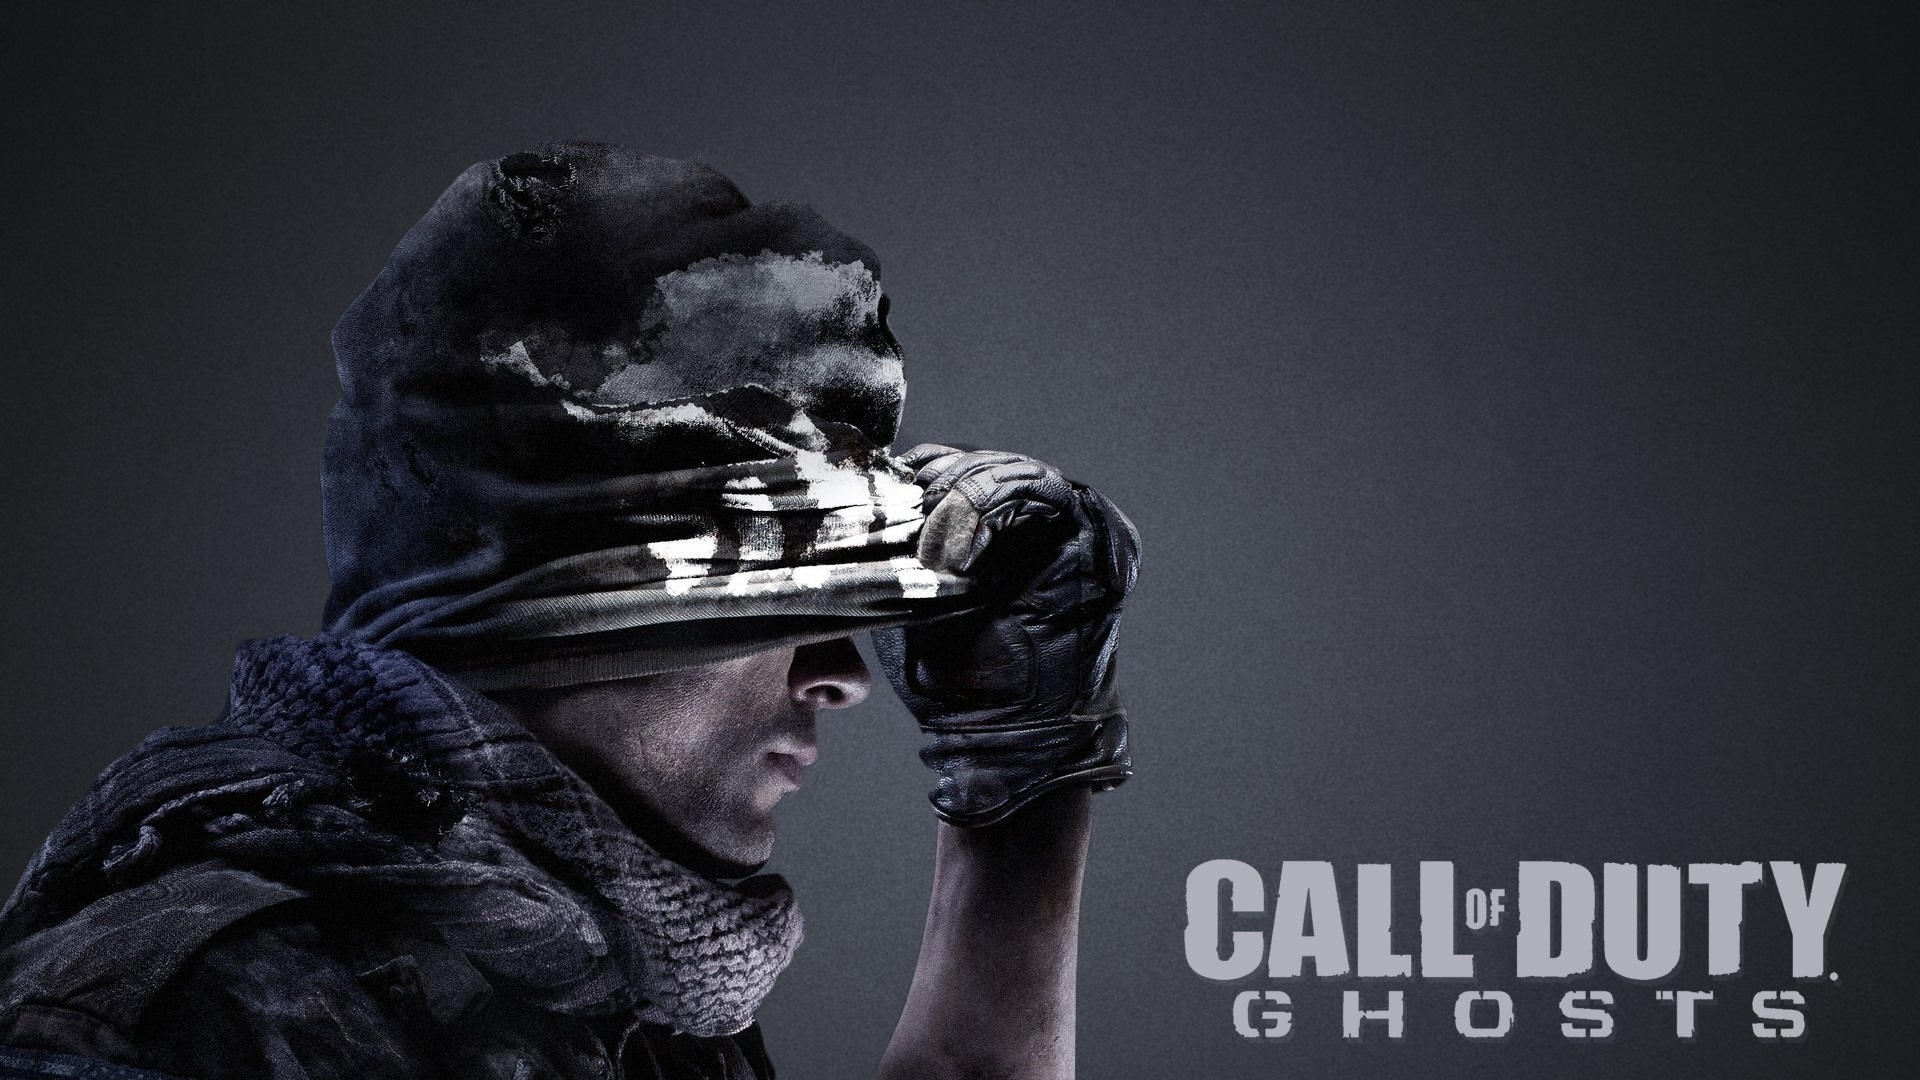 Call of Duty Ghosts wallpaper 1